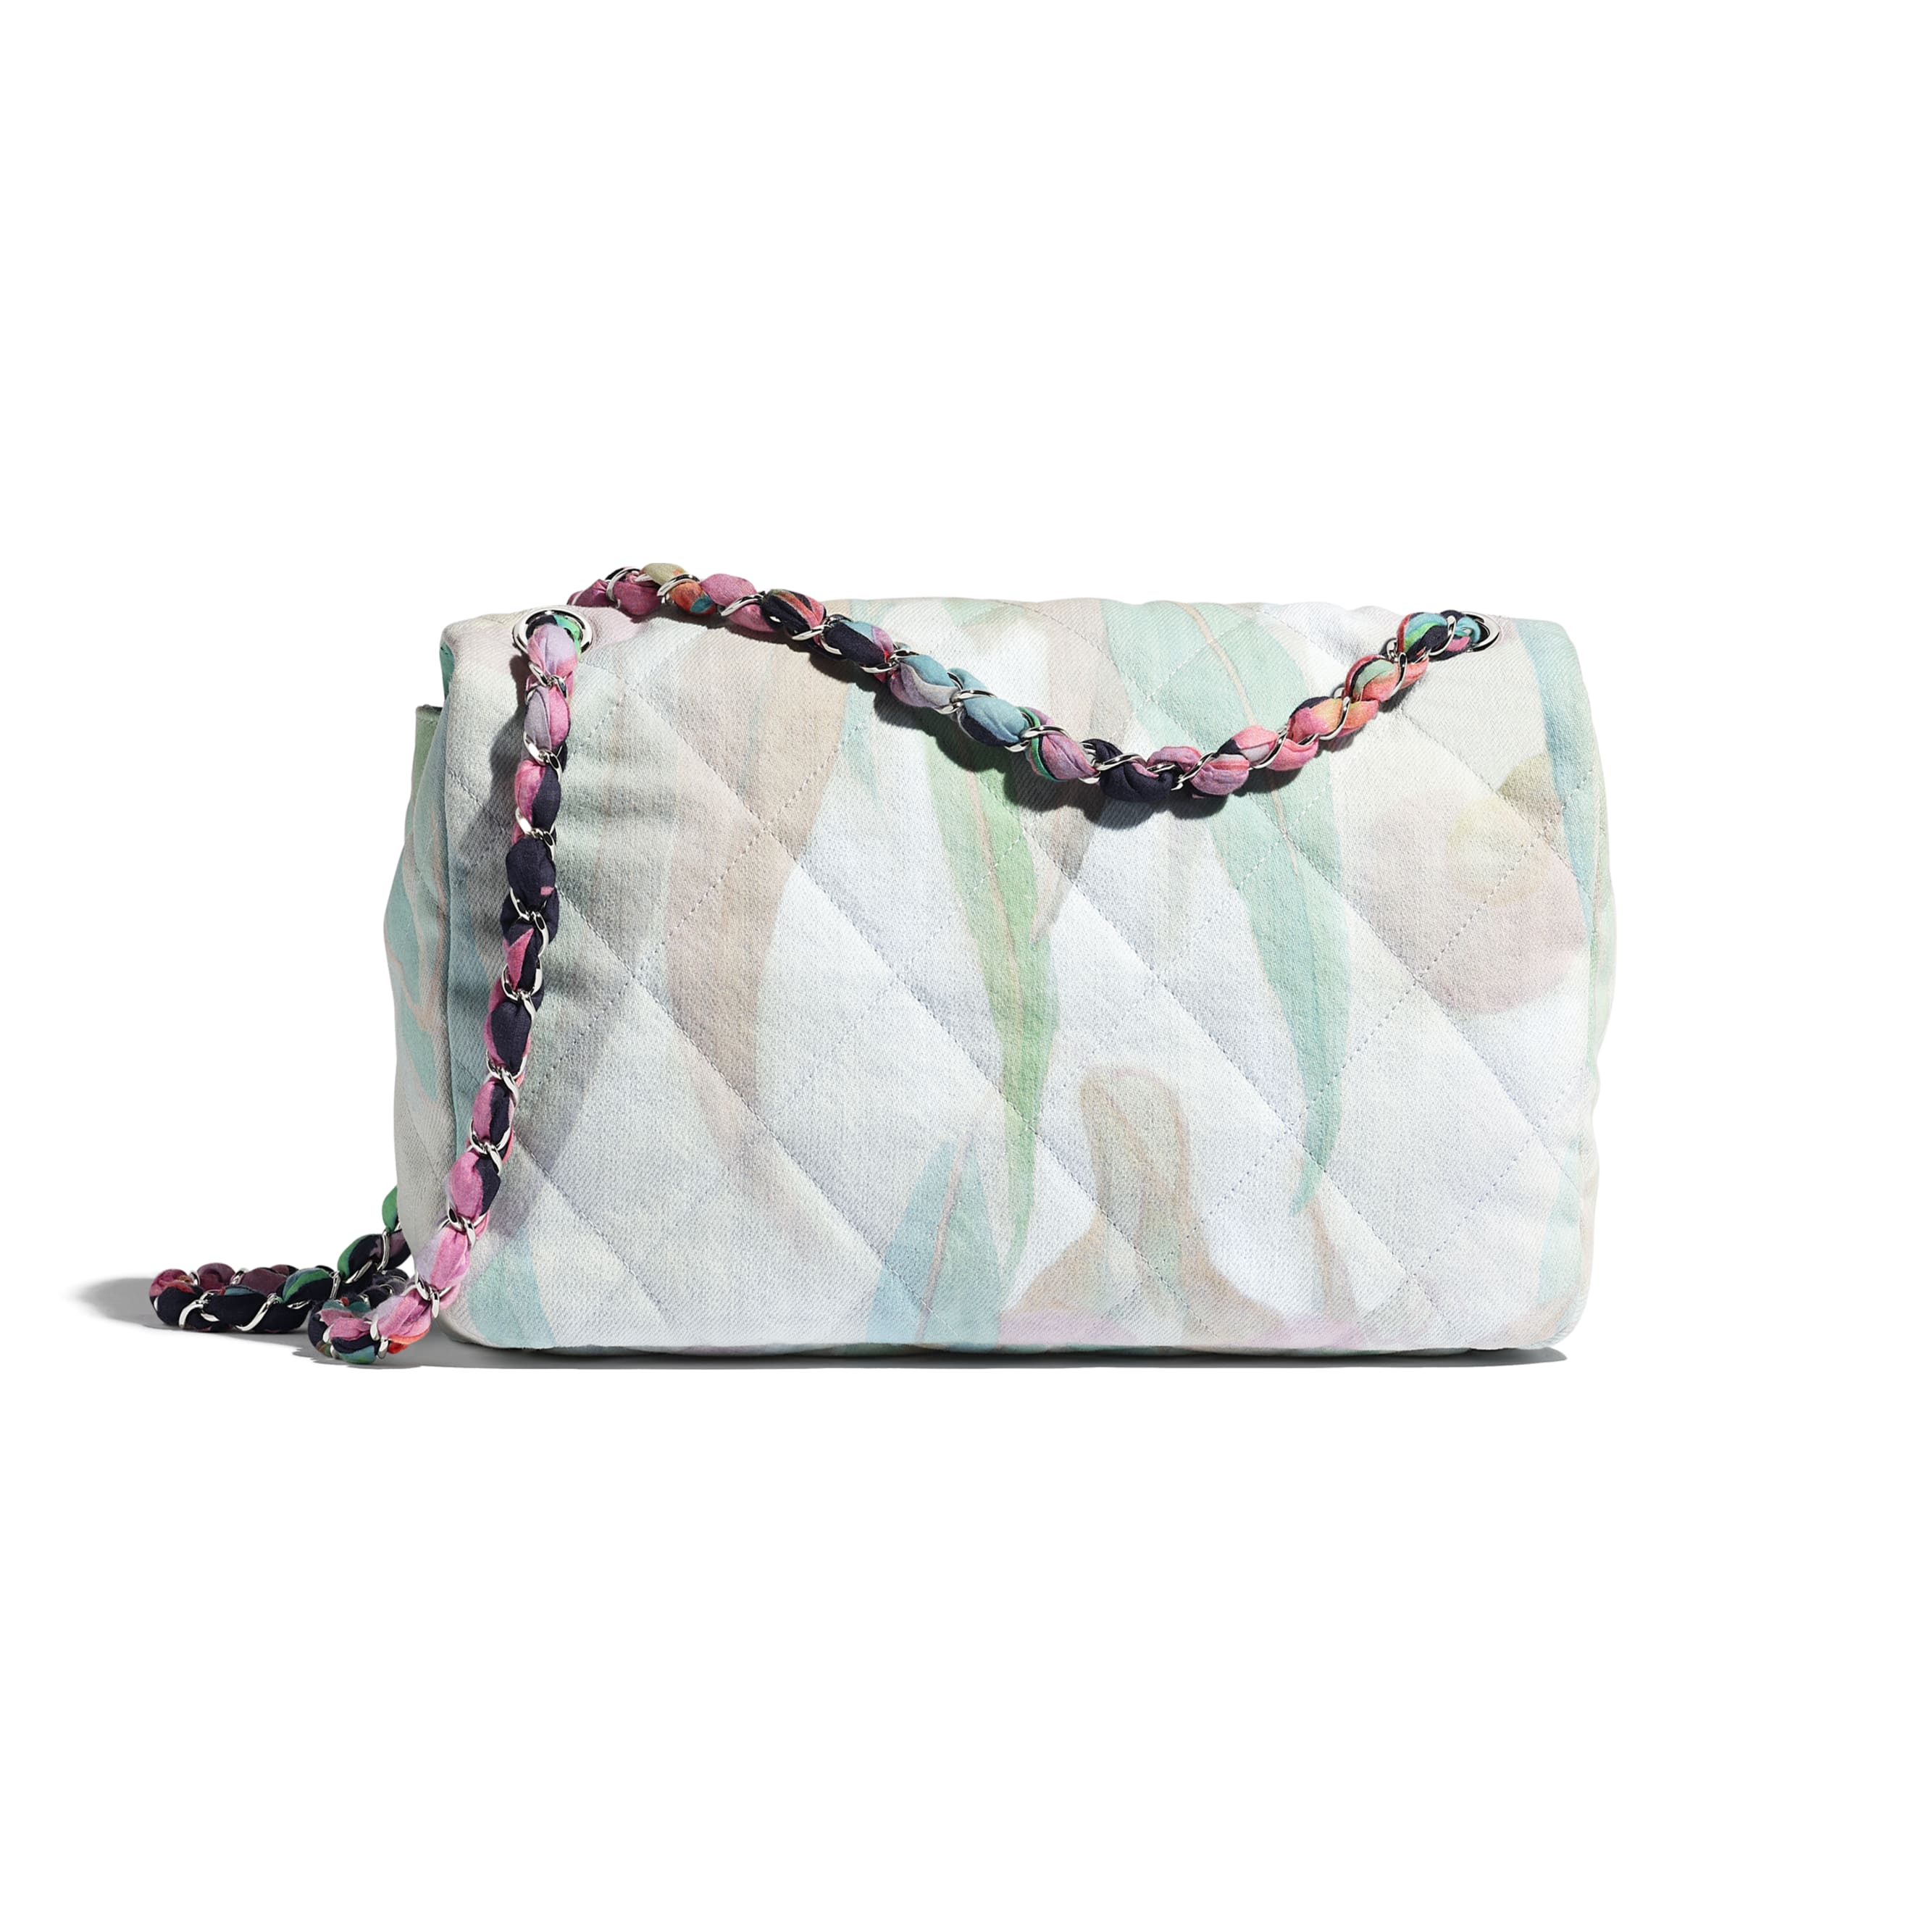 Flap Bag - Multicolour - Denim & Silver-Tone Metal - Alternative view - see standard sized version